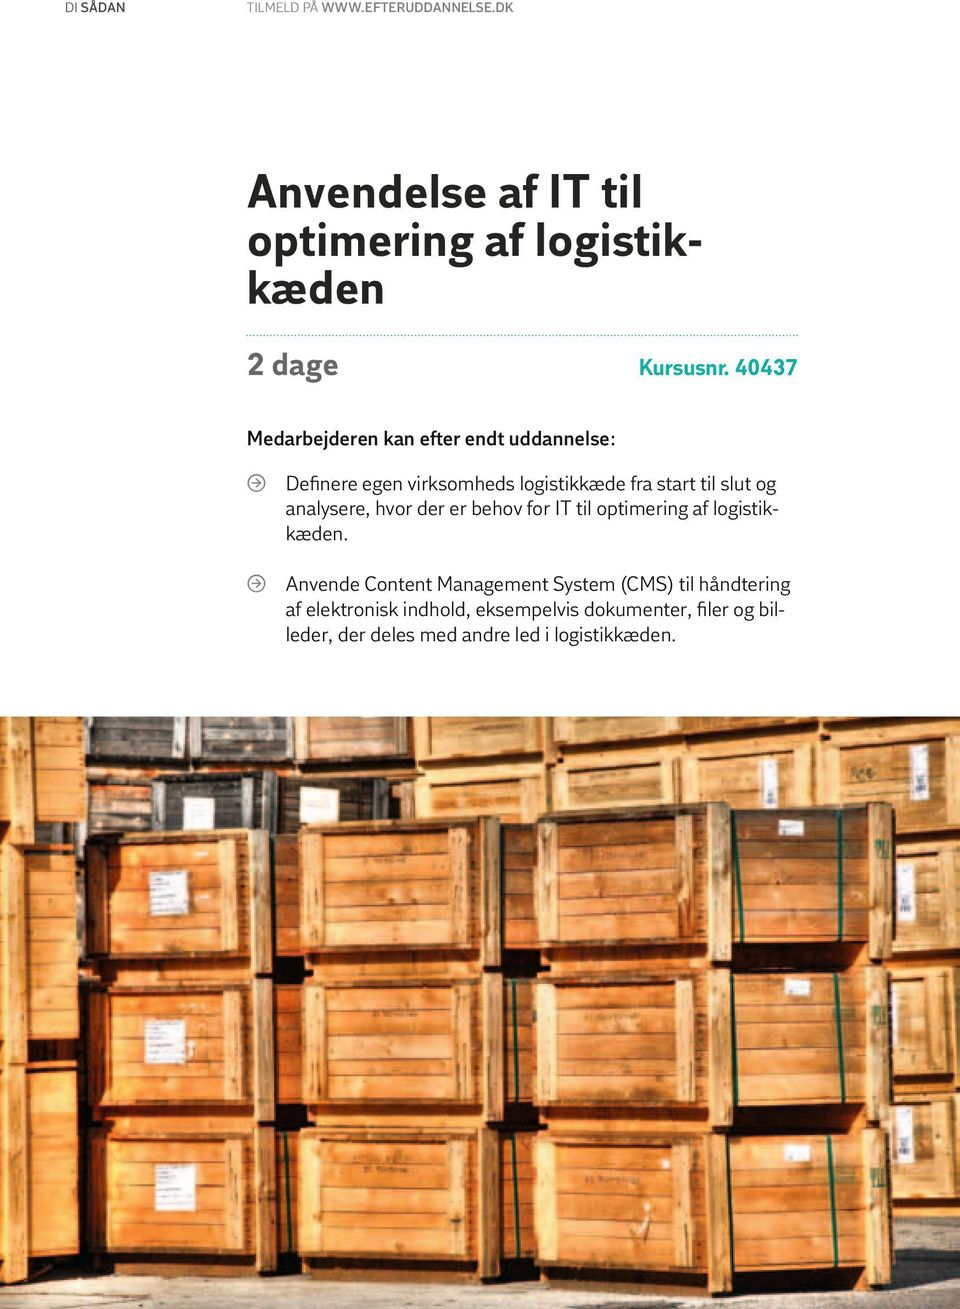 behov for IT til optimering af logistikkæden.